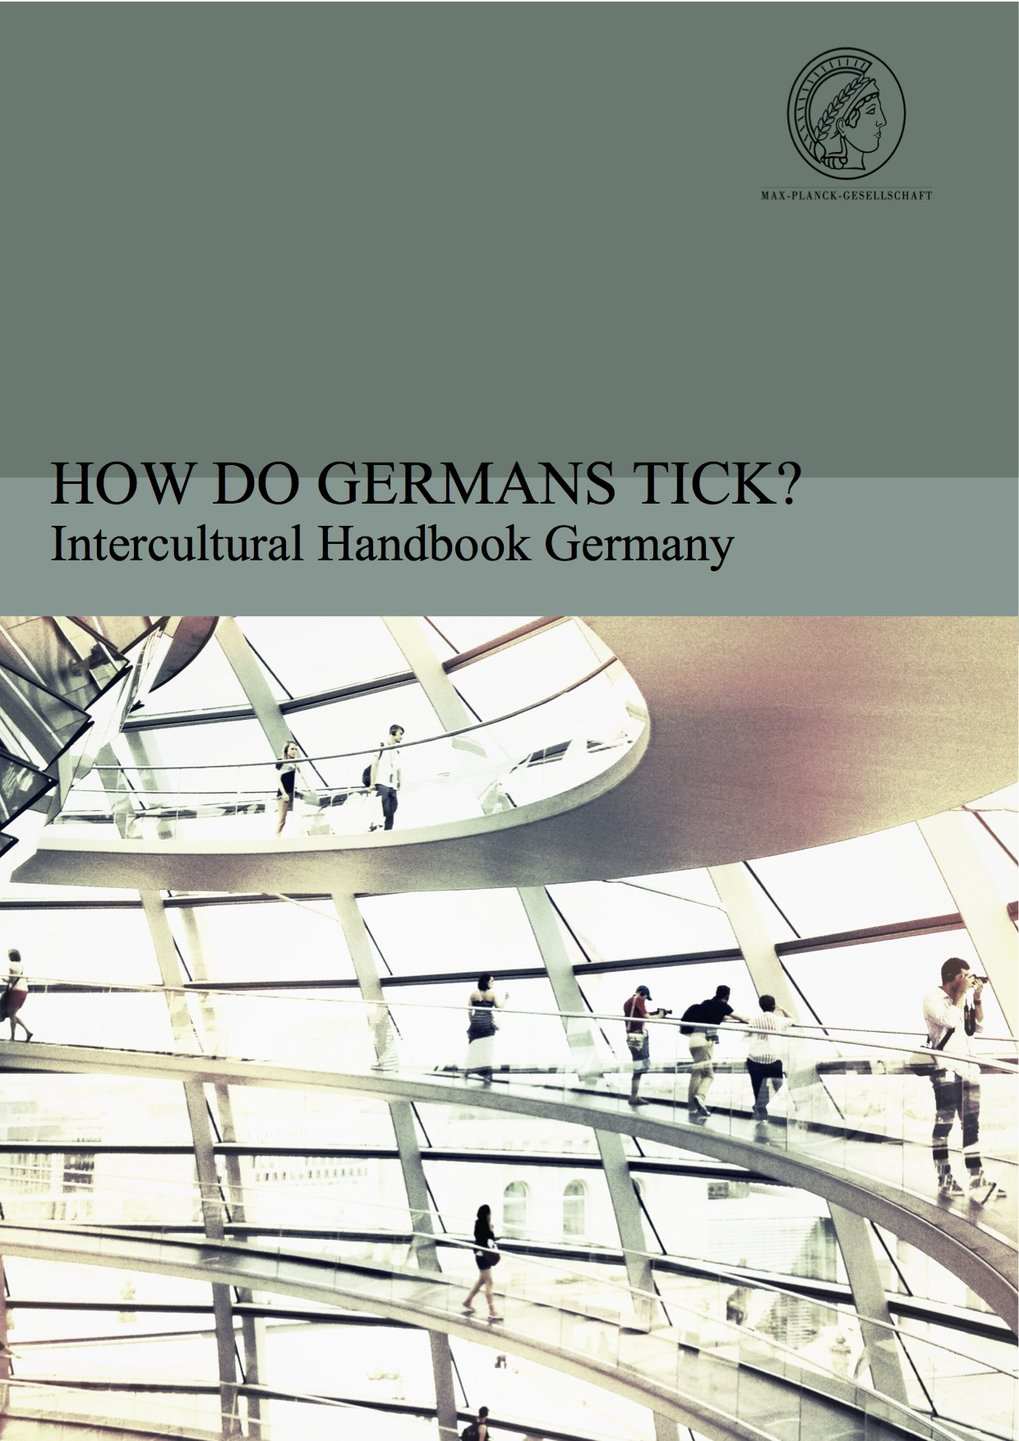 How do Germans tick? (PDF; 7.1 MB)